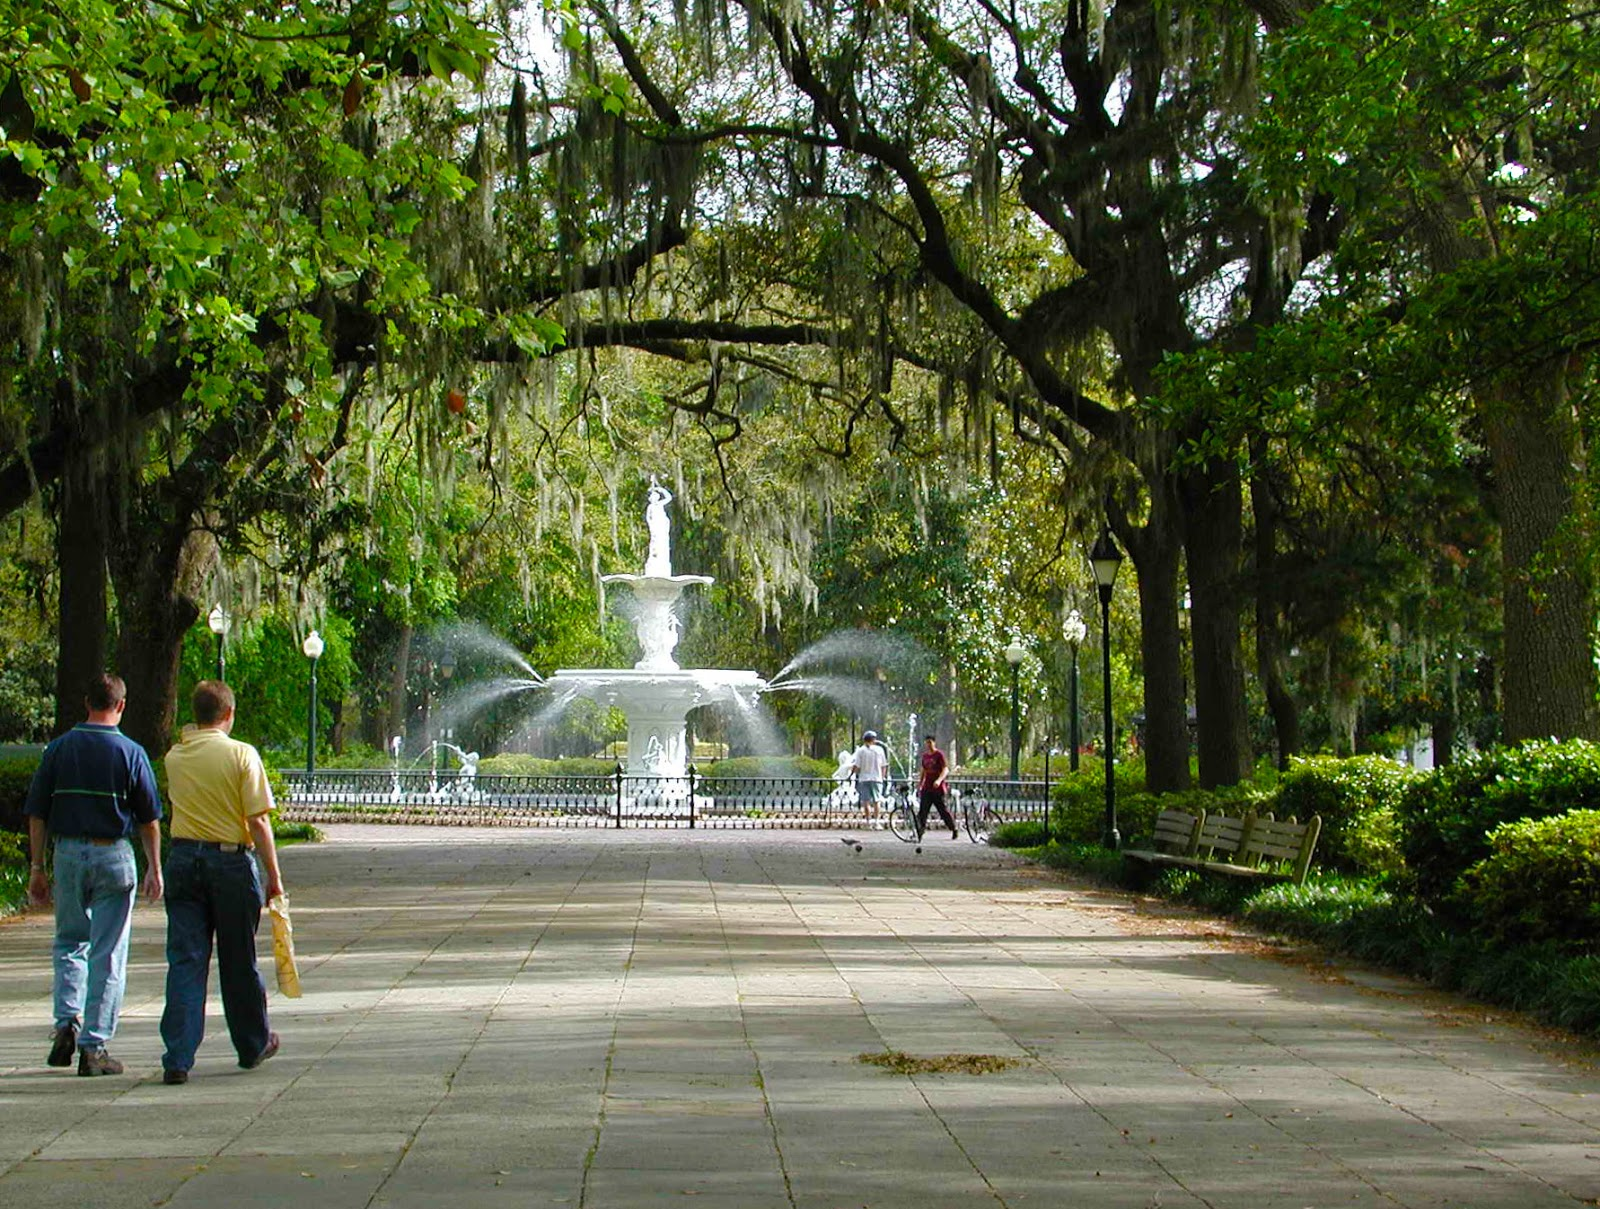 People walking around a fountain in a green space.